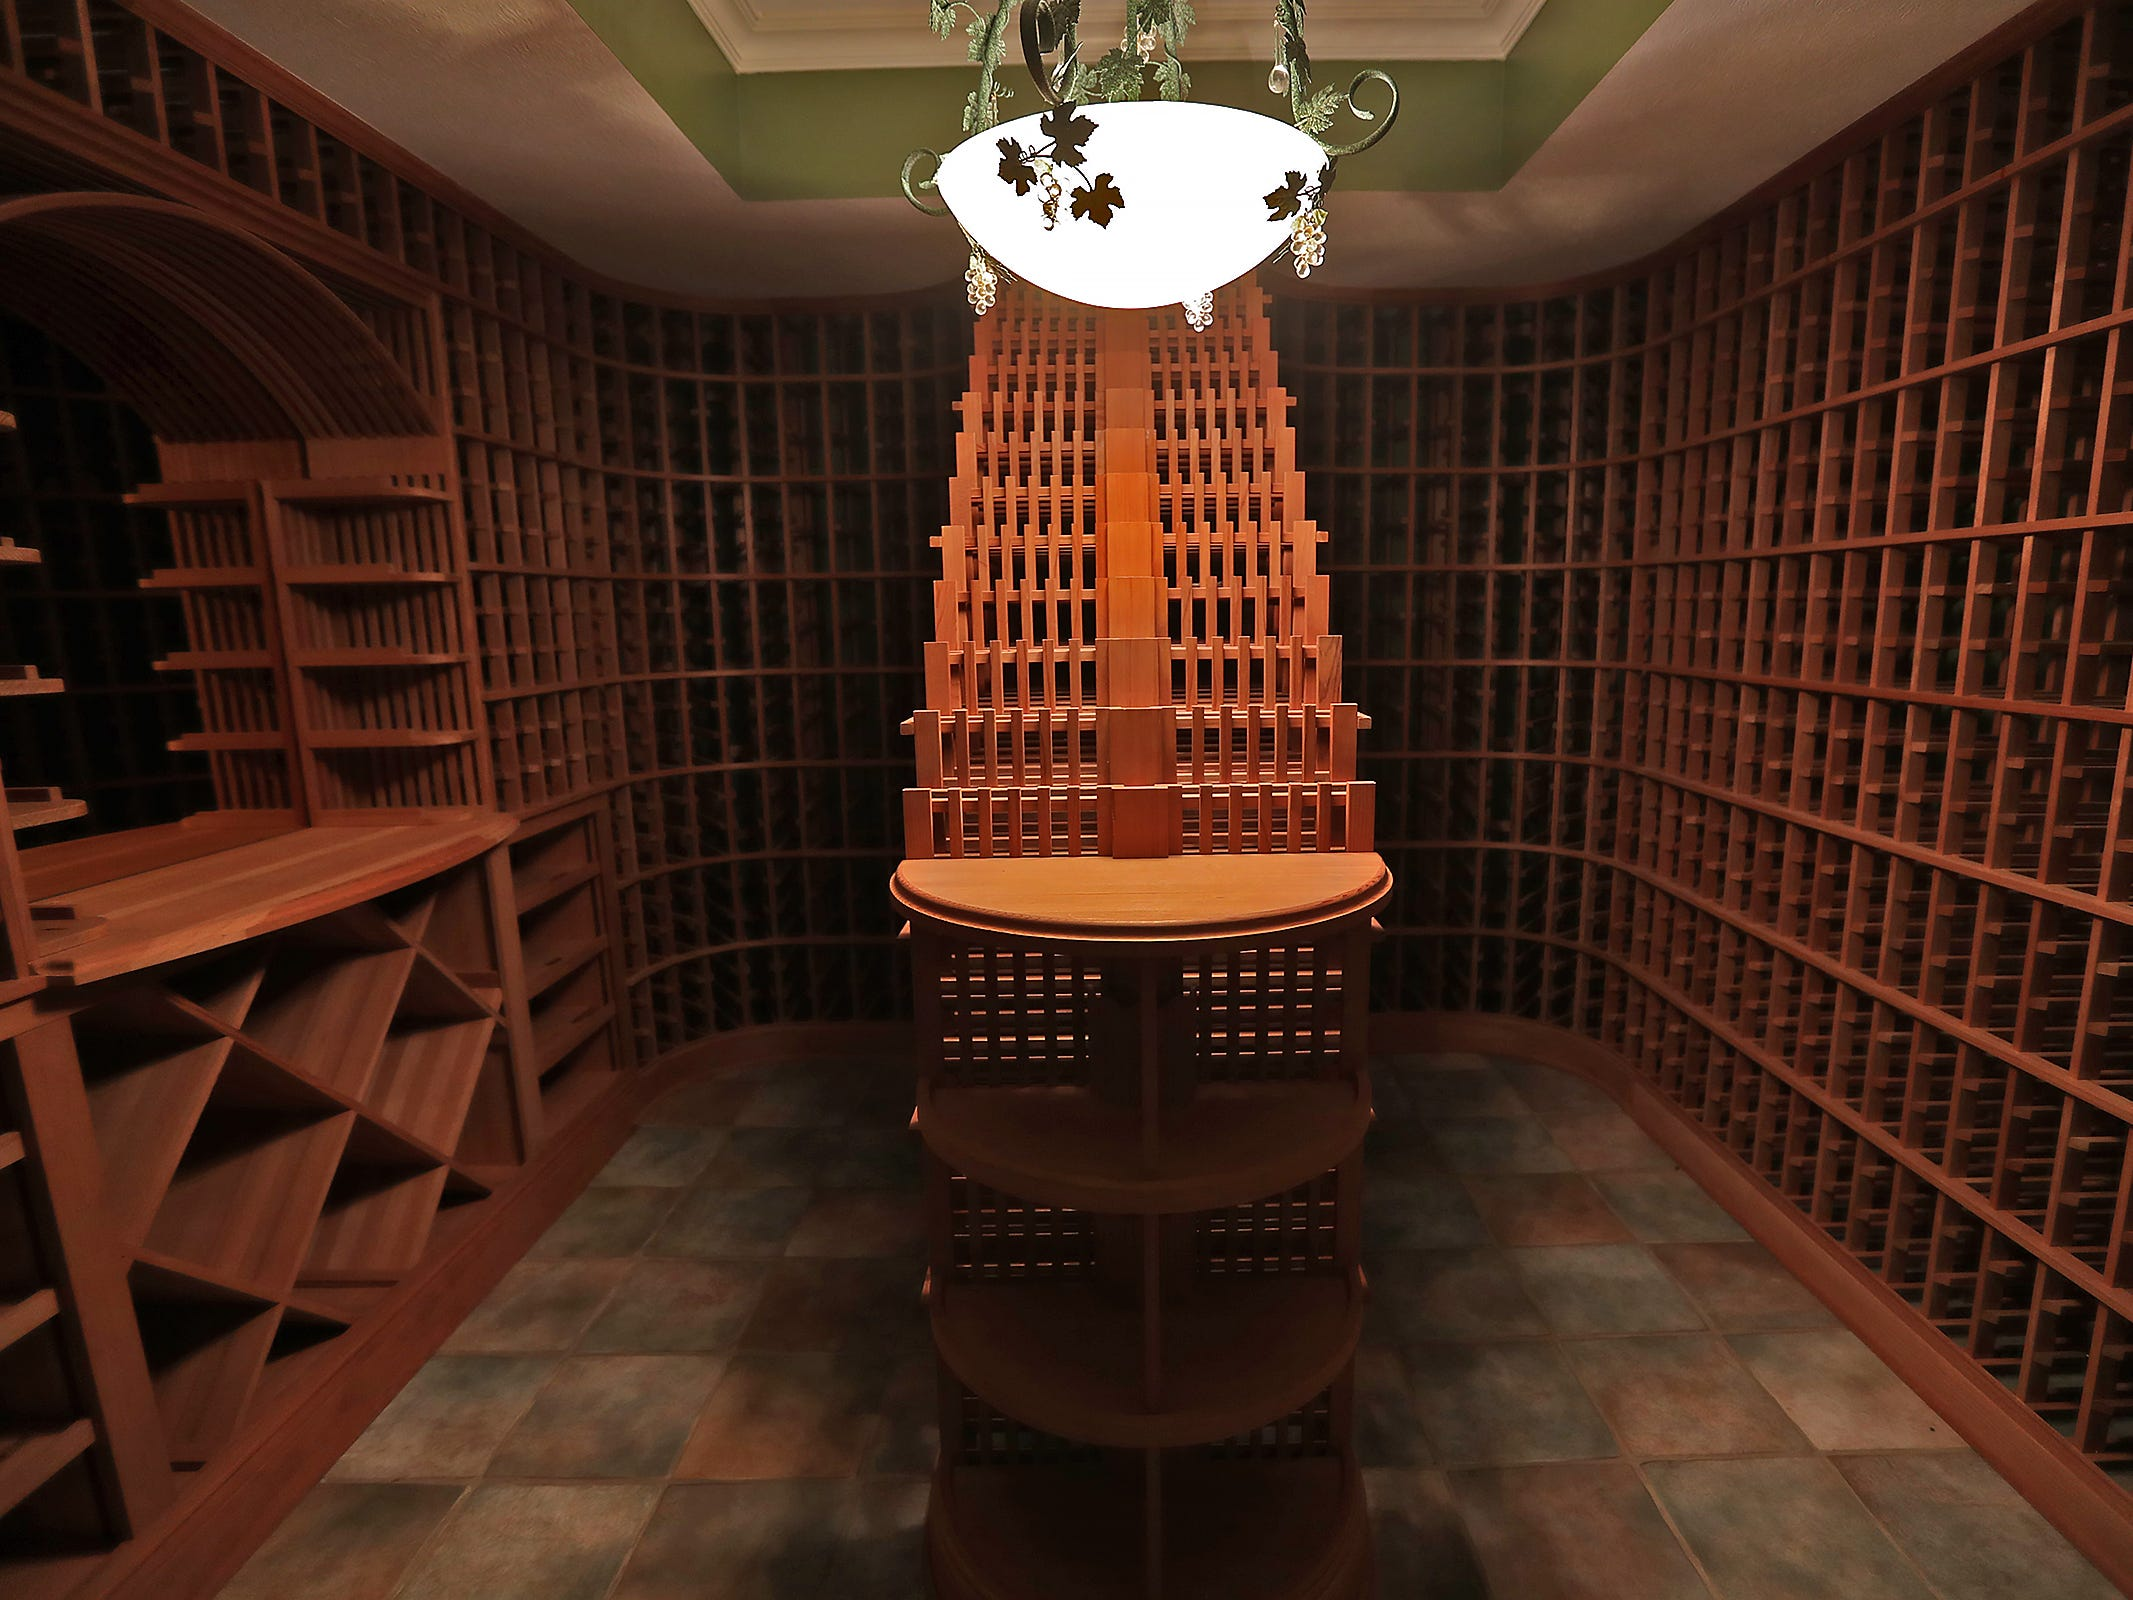 This is the wine cellar in the home at 1270 Laurelwood Ct. in Carmel, Friday, Dec. 28, 2018.